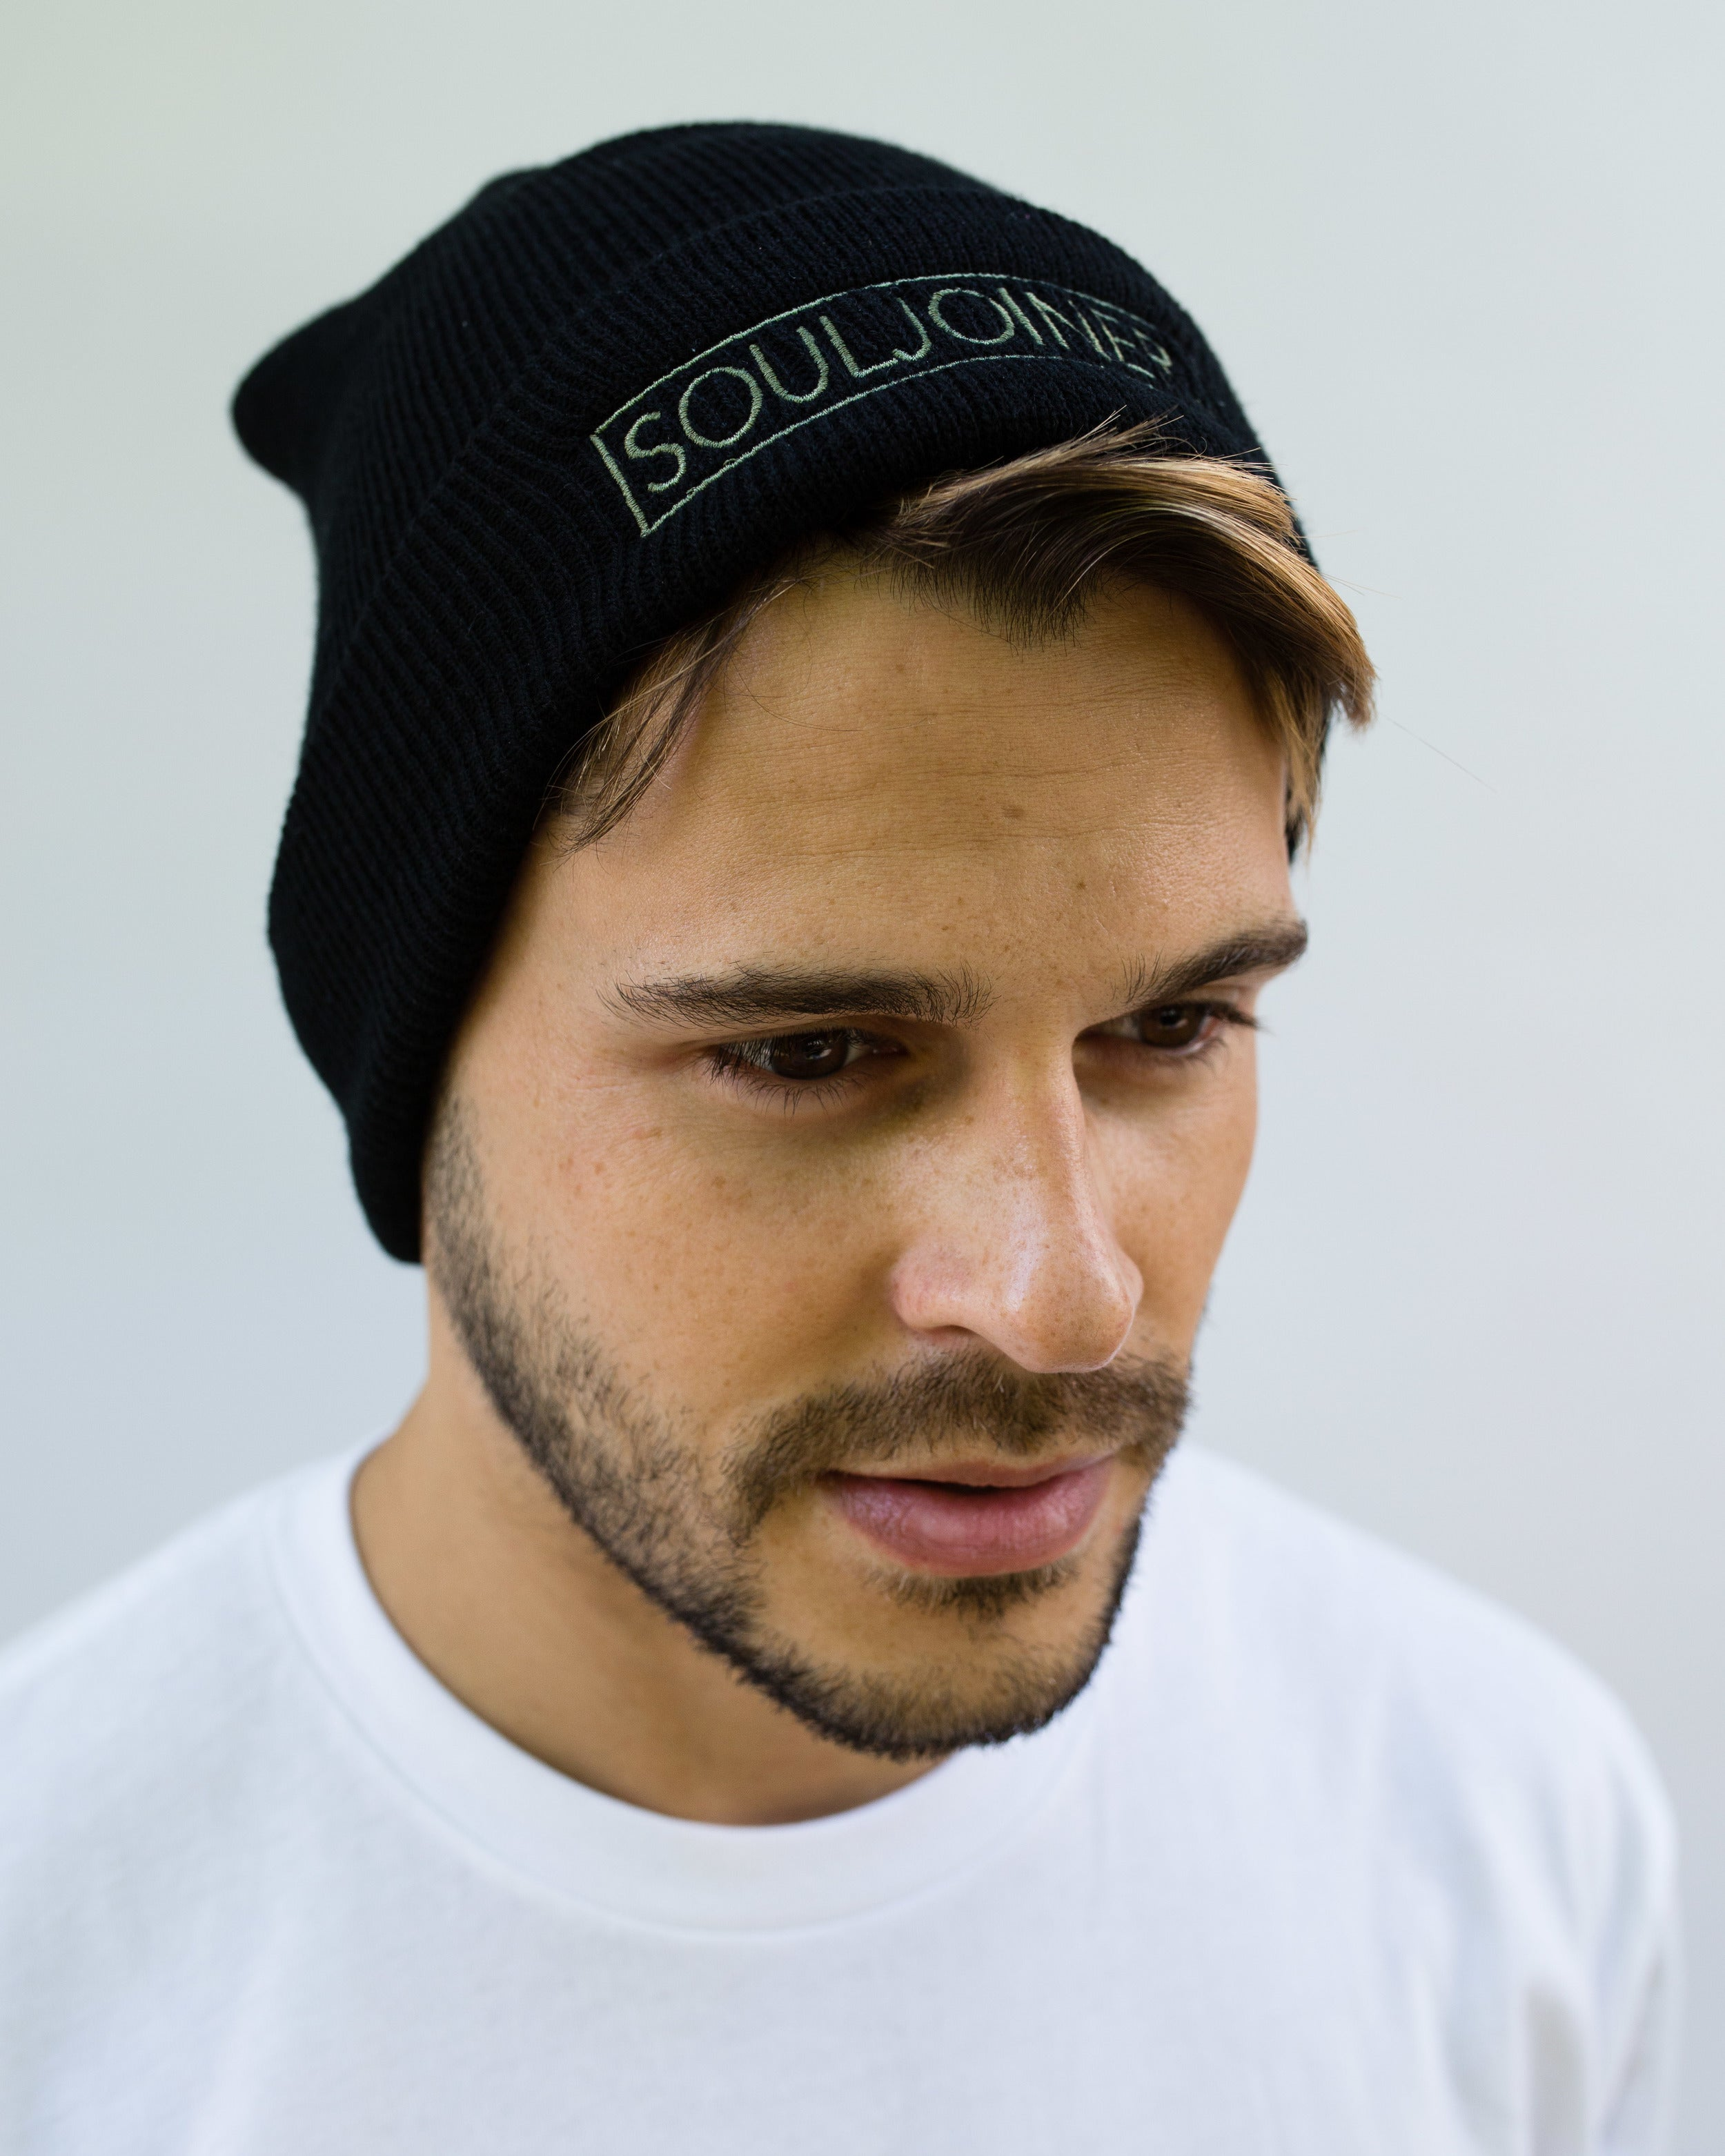 MEN'S BOX LOGO EMBROIDERED BEANIE - Soul Joiner